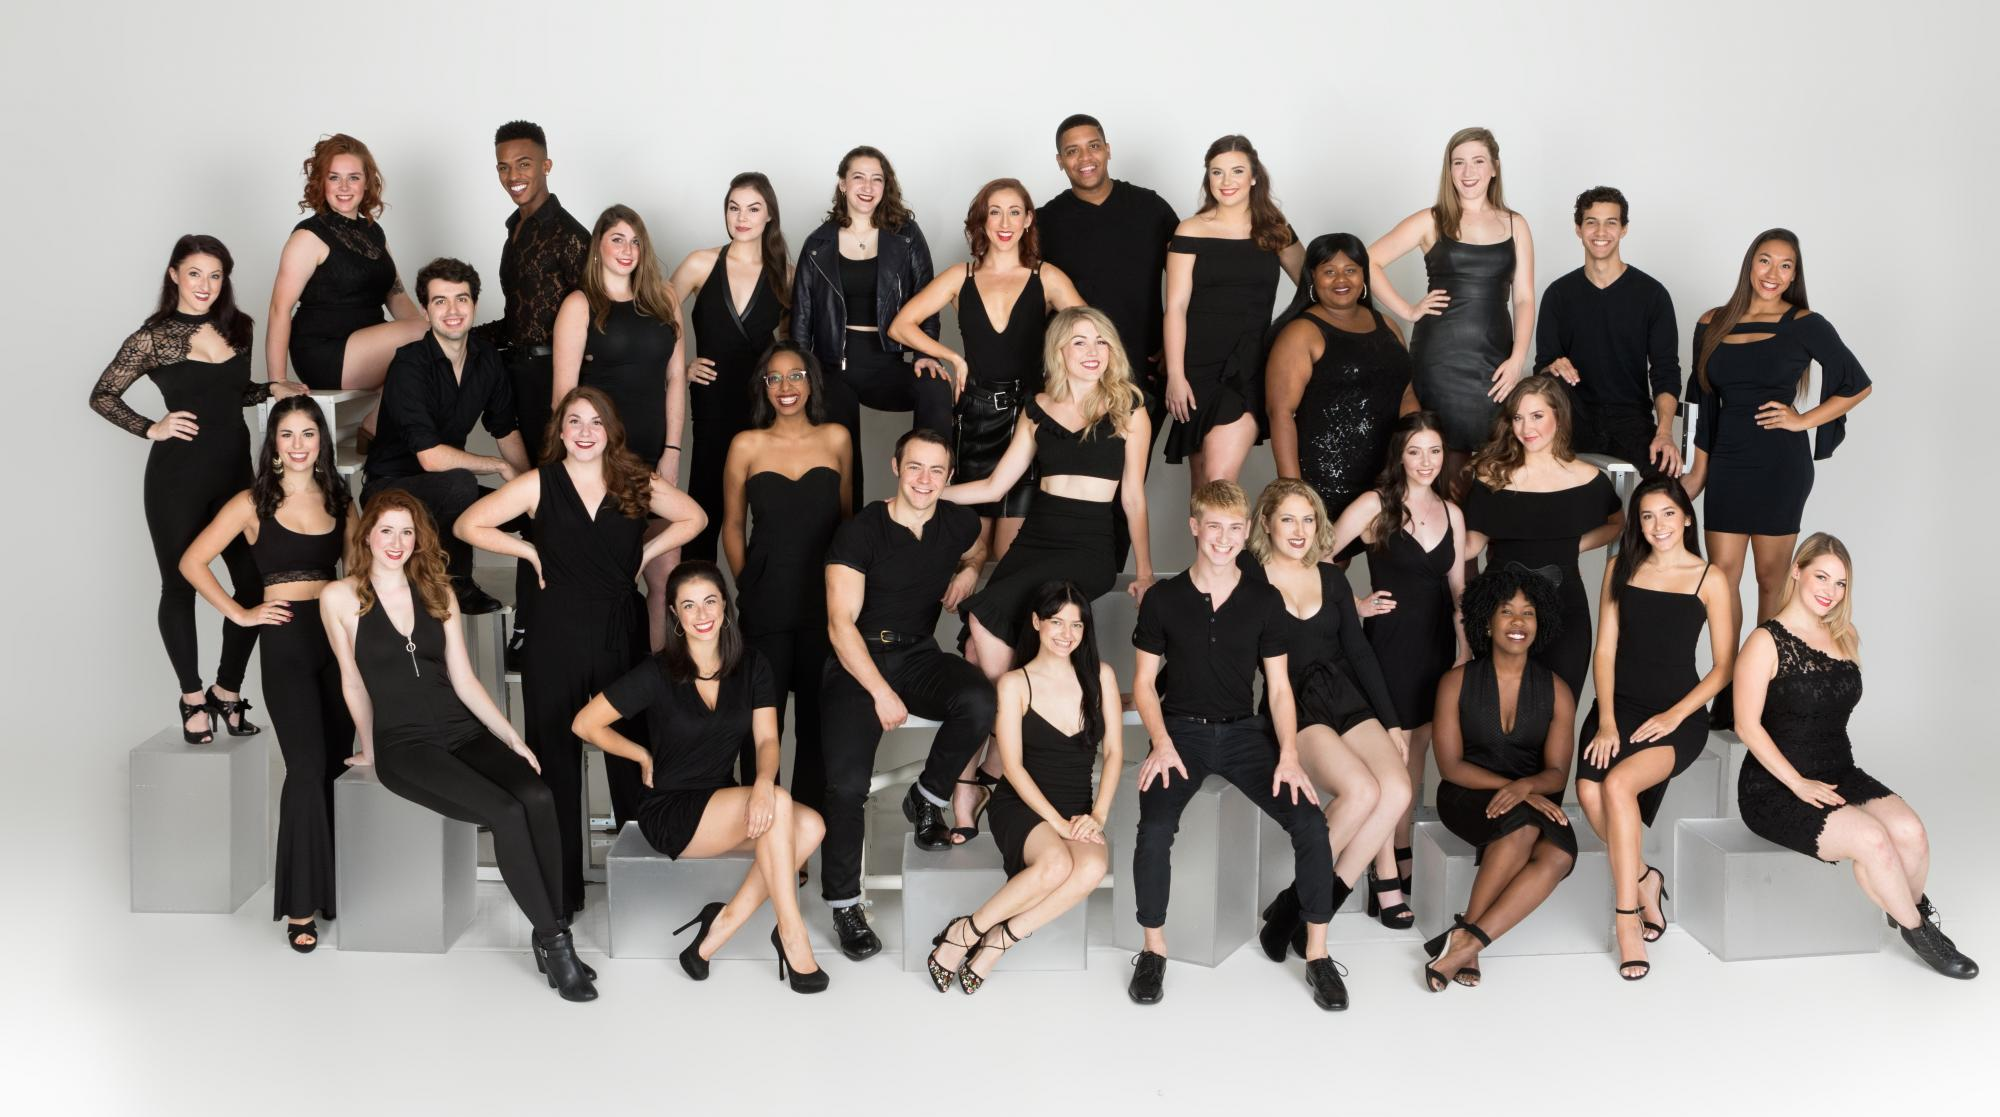 May 2019: - Jordan, along with the rest of the Class of 2019 BFA Musical Theatre, will be performing in a showcase in New York City this upcoming May.